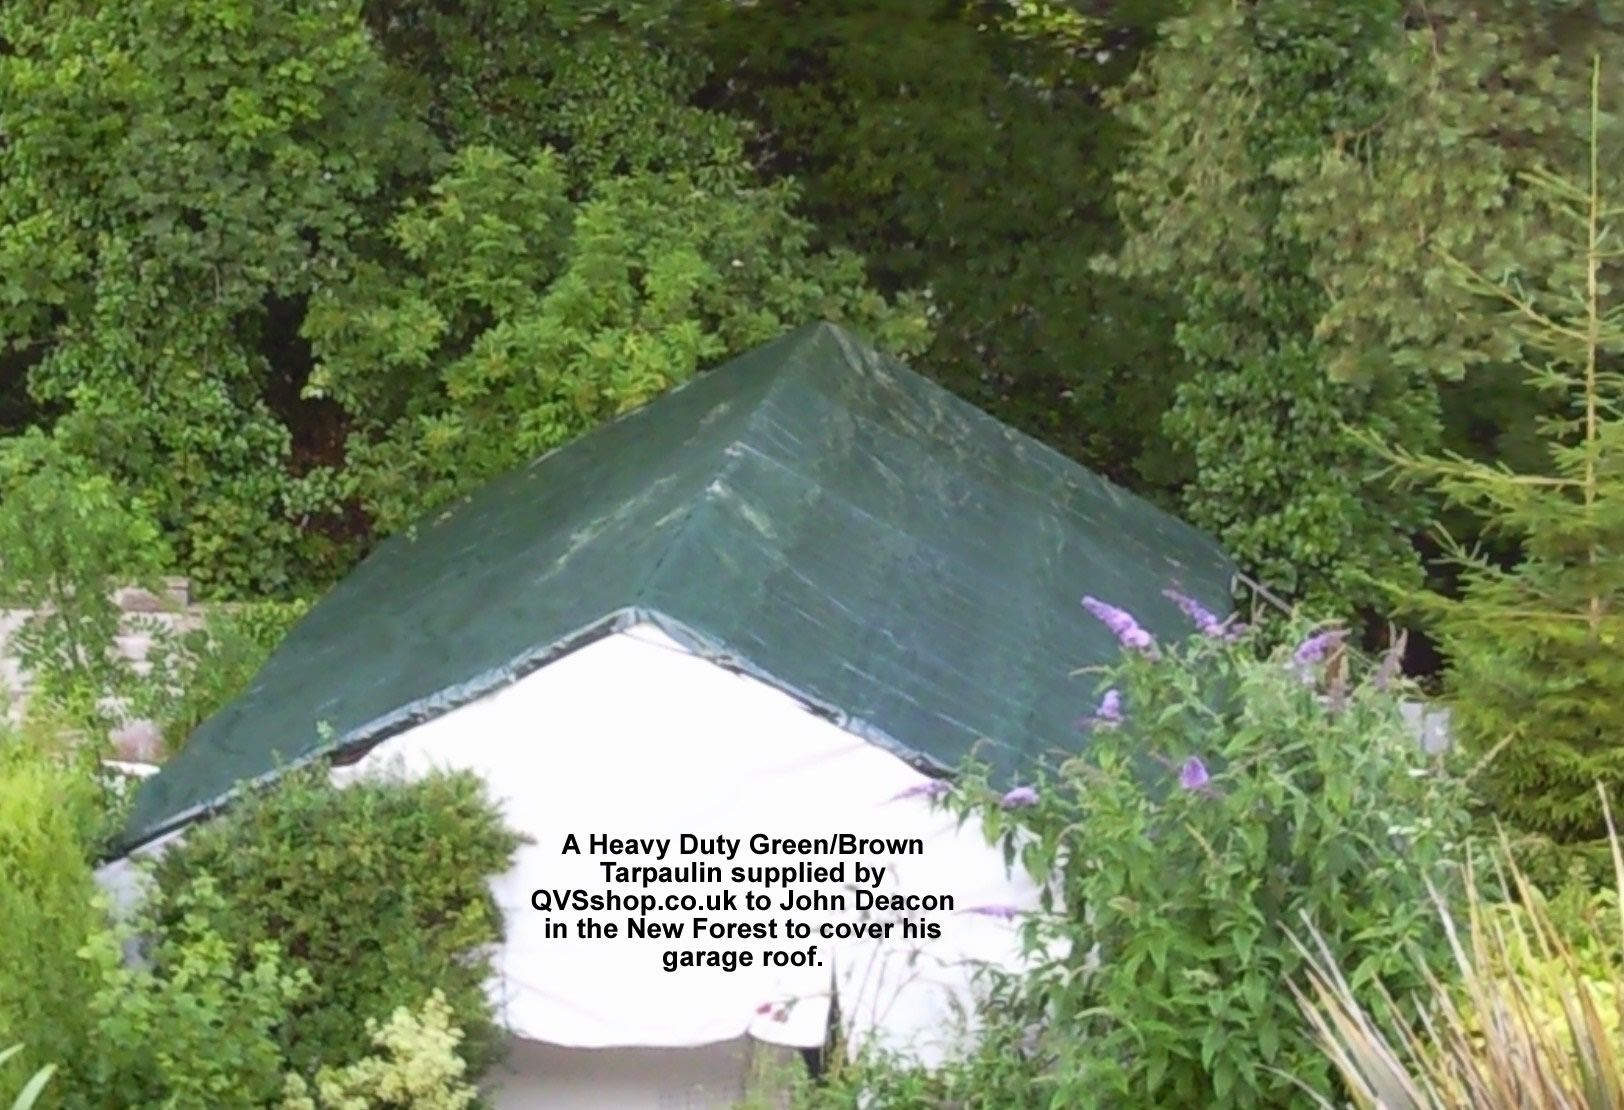 Green brown tarpaulin on roof